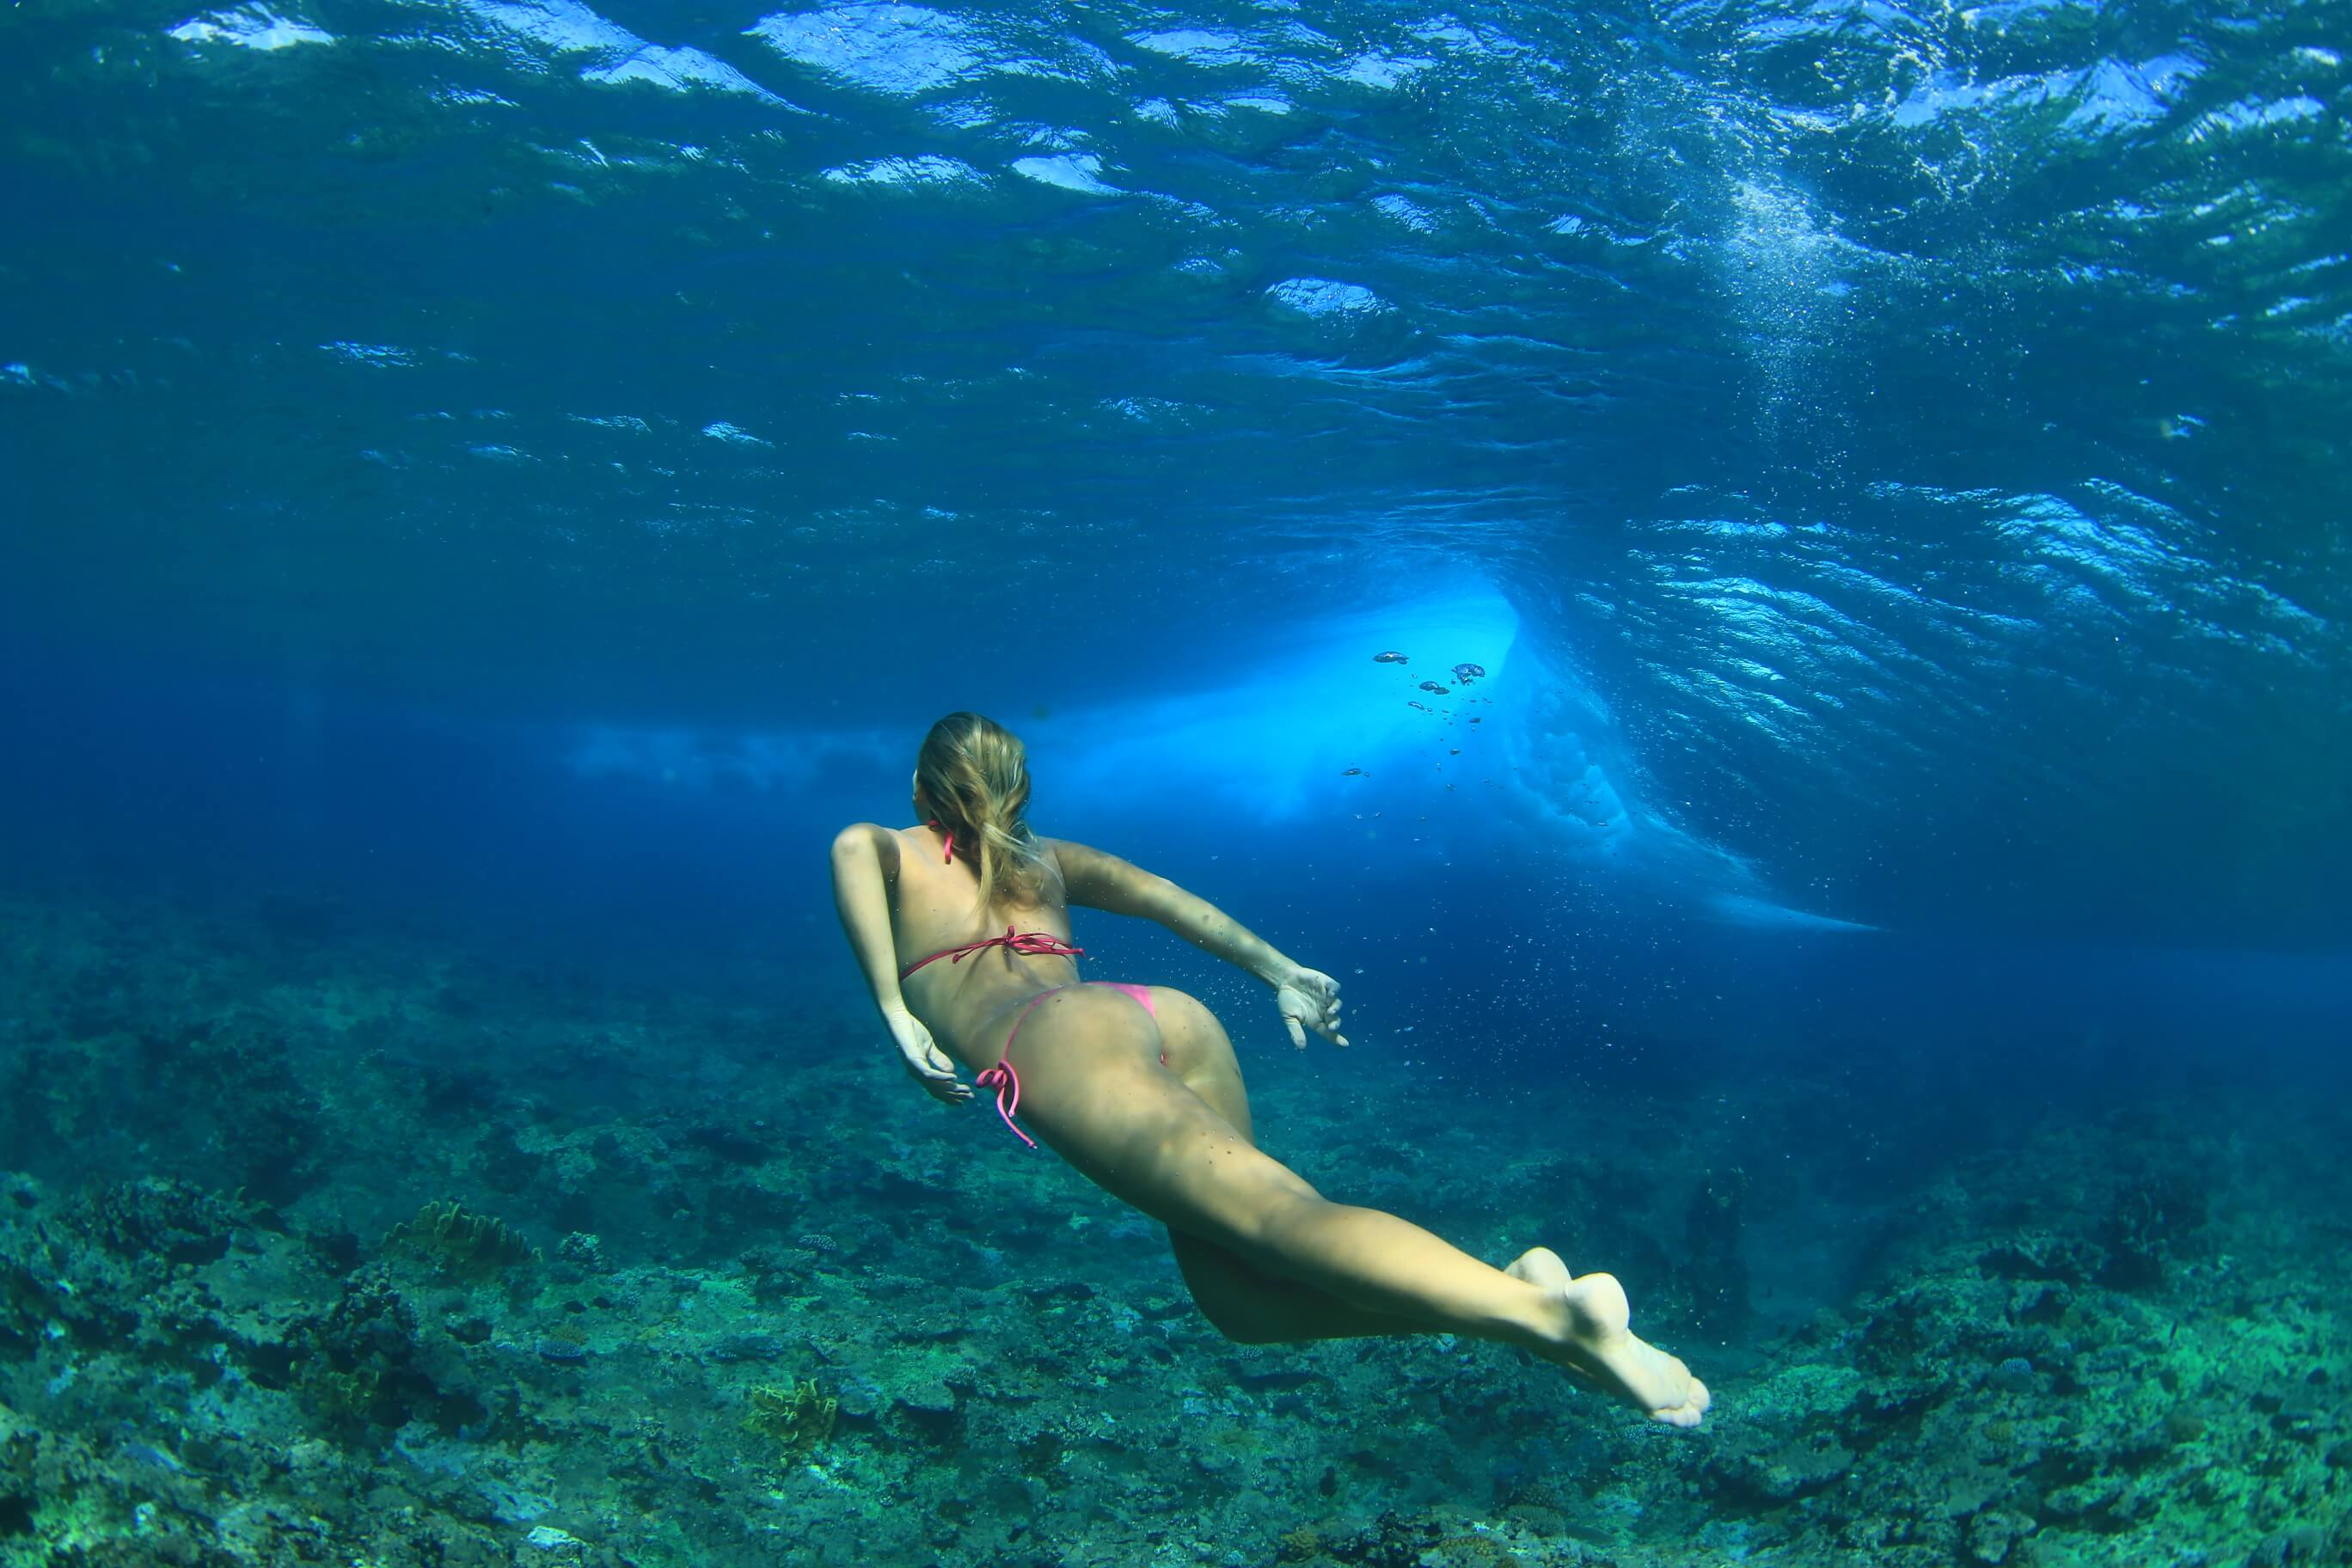 Diving and snorkeling at Pohnpei Surf Club, in Micronesia